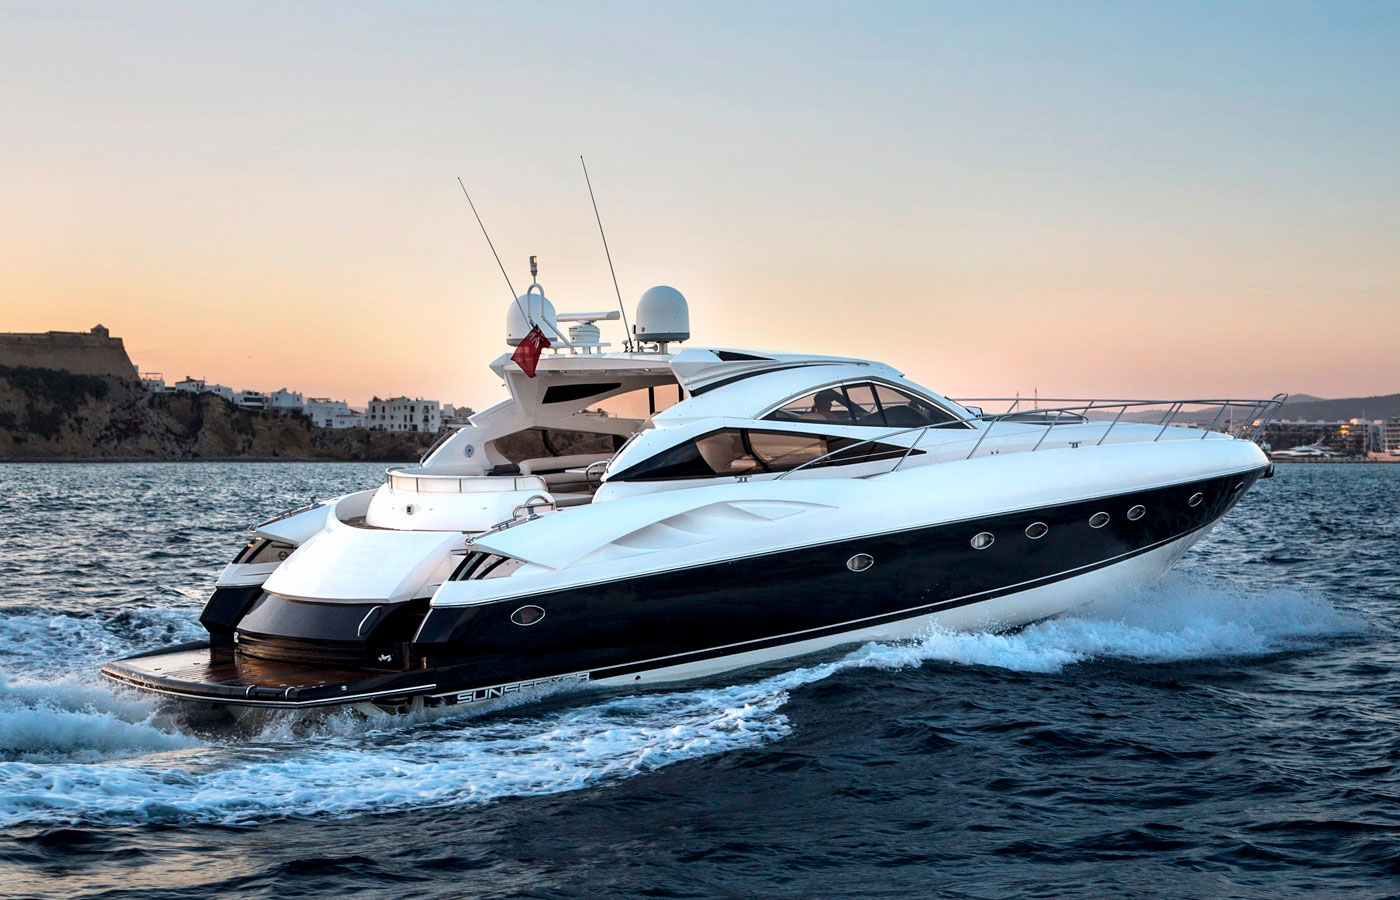 5 Sunseeker Yachts That Crushed The Competition